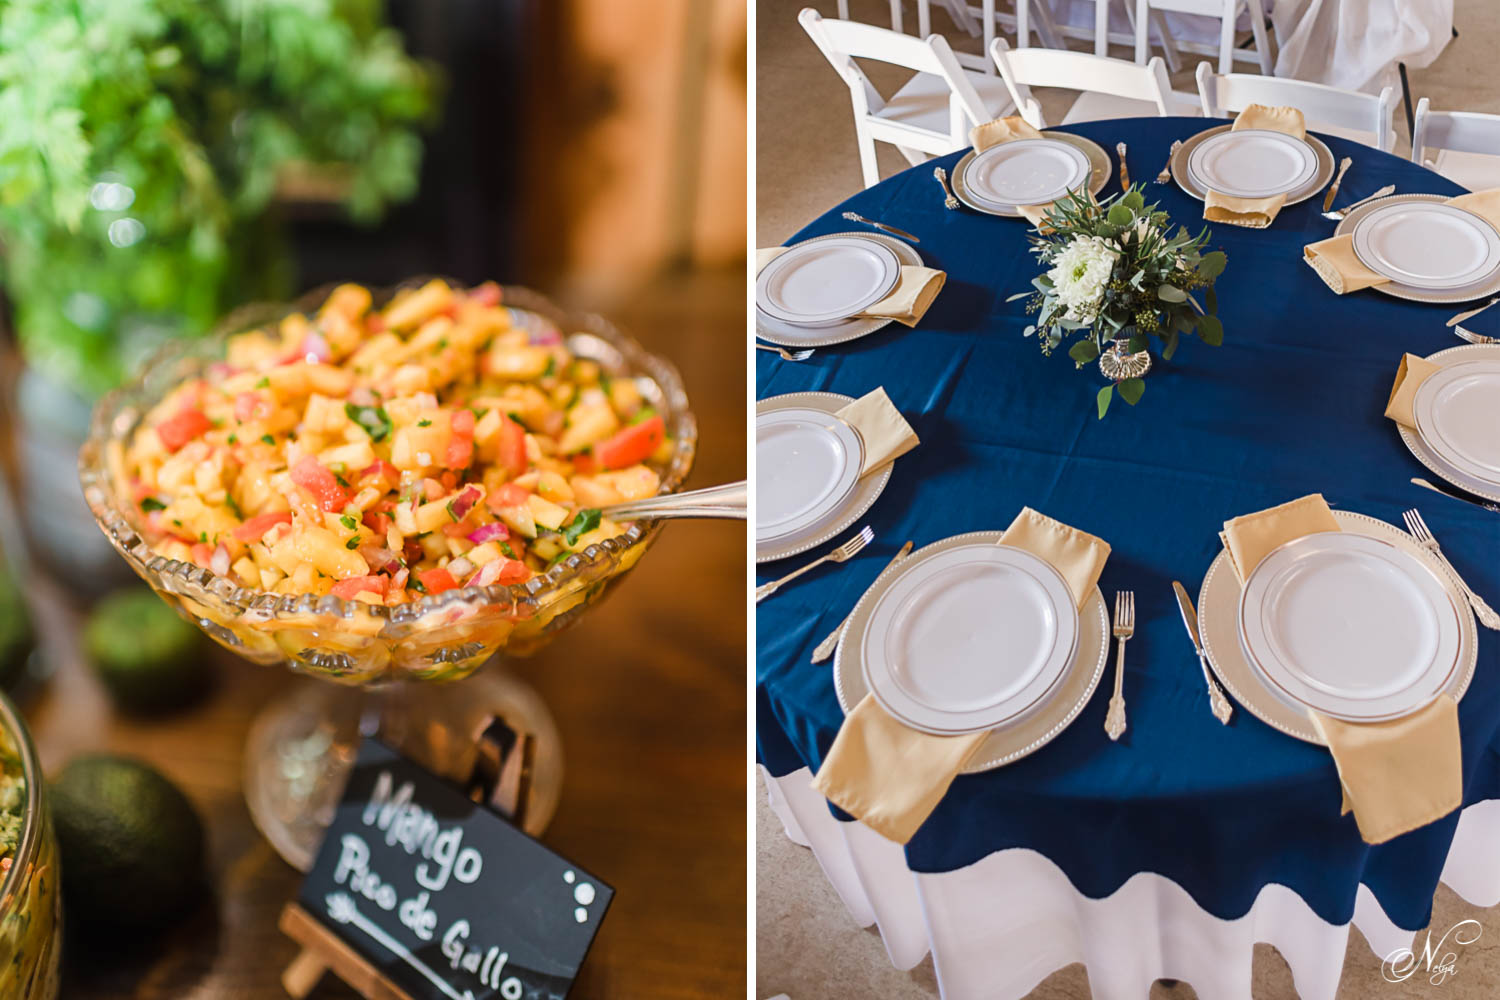 fresh mango salsa. And place settings on navy blue table cloths and gold napkins.